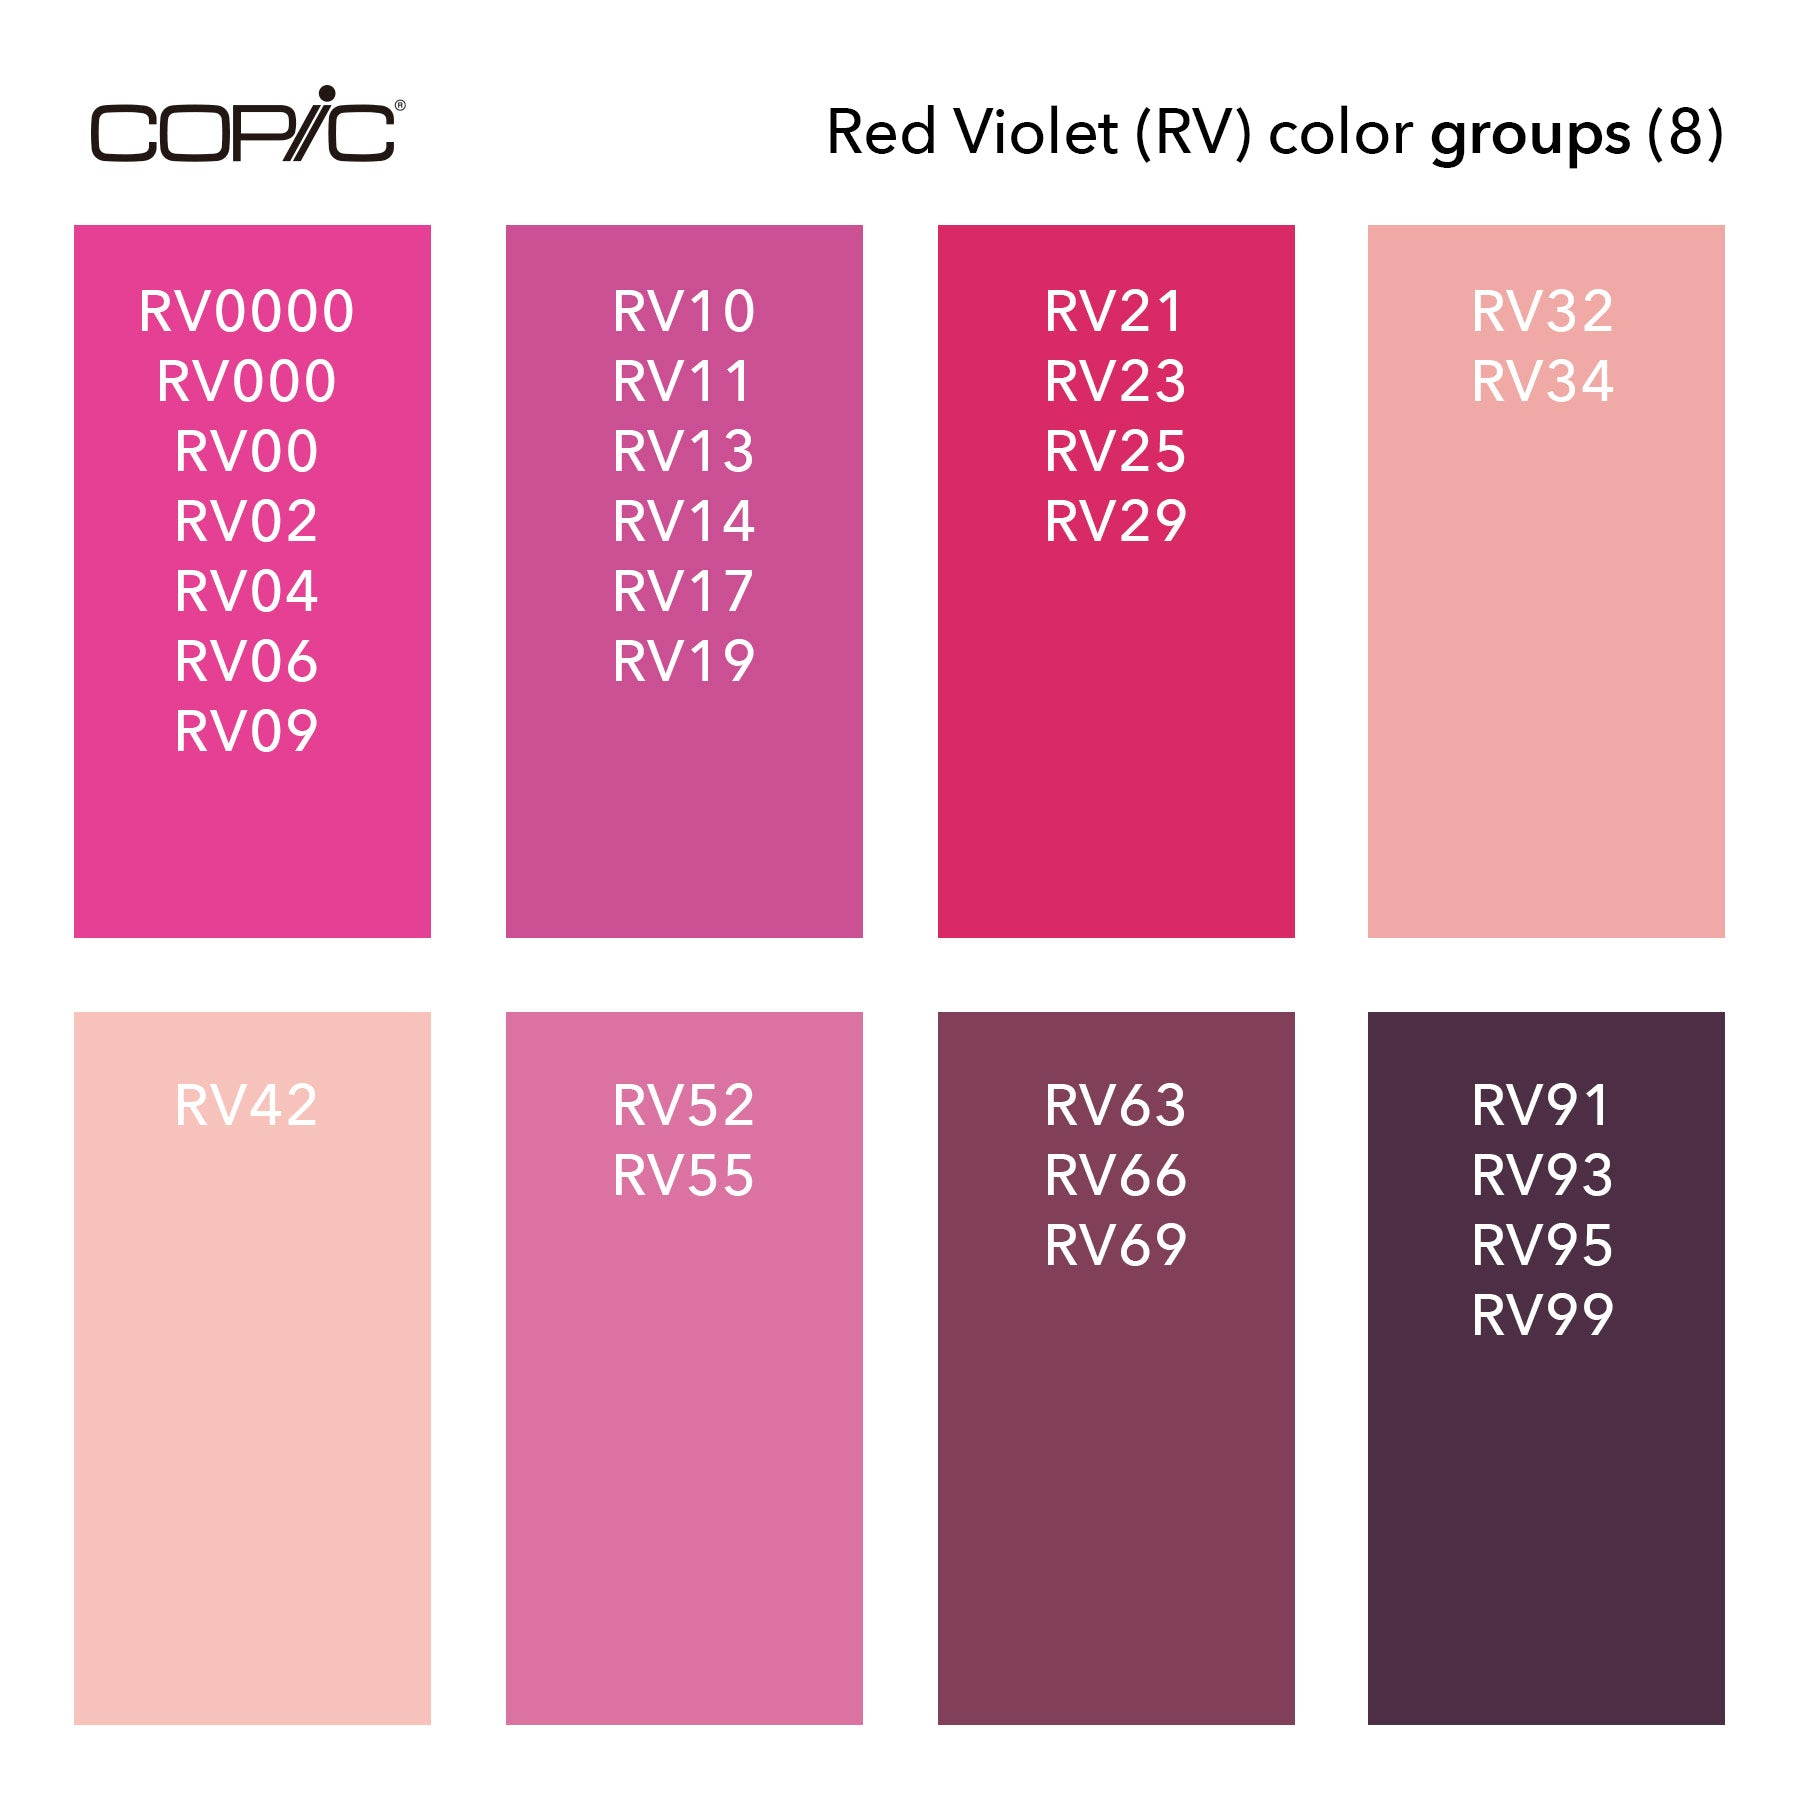 RV Color groups